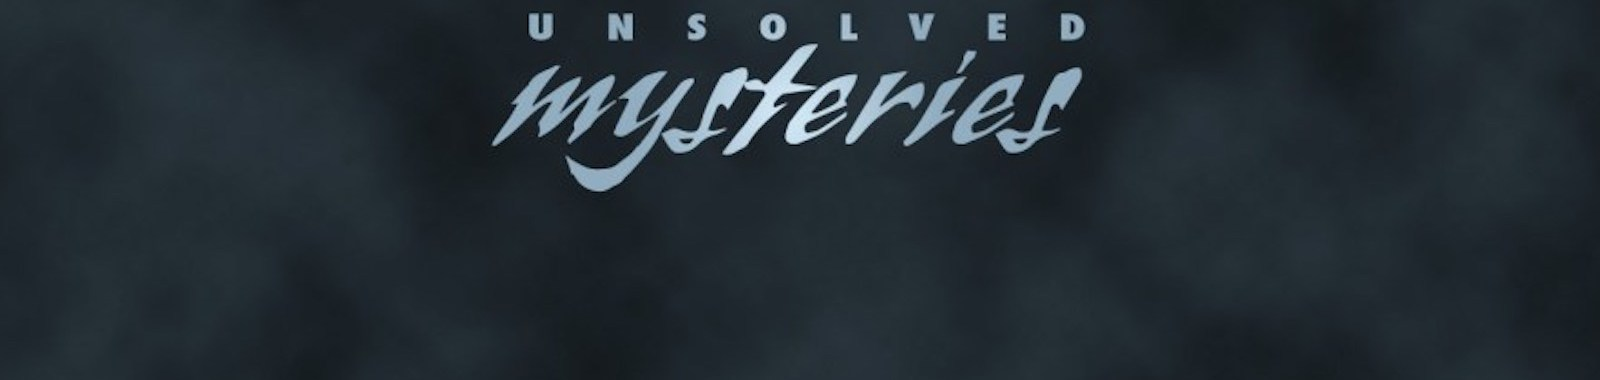 UnsolvedMysteries-banner2